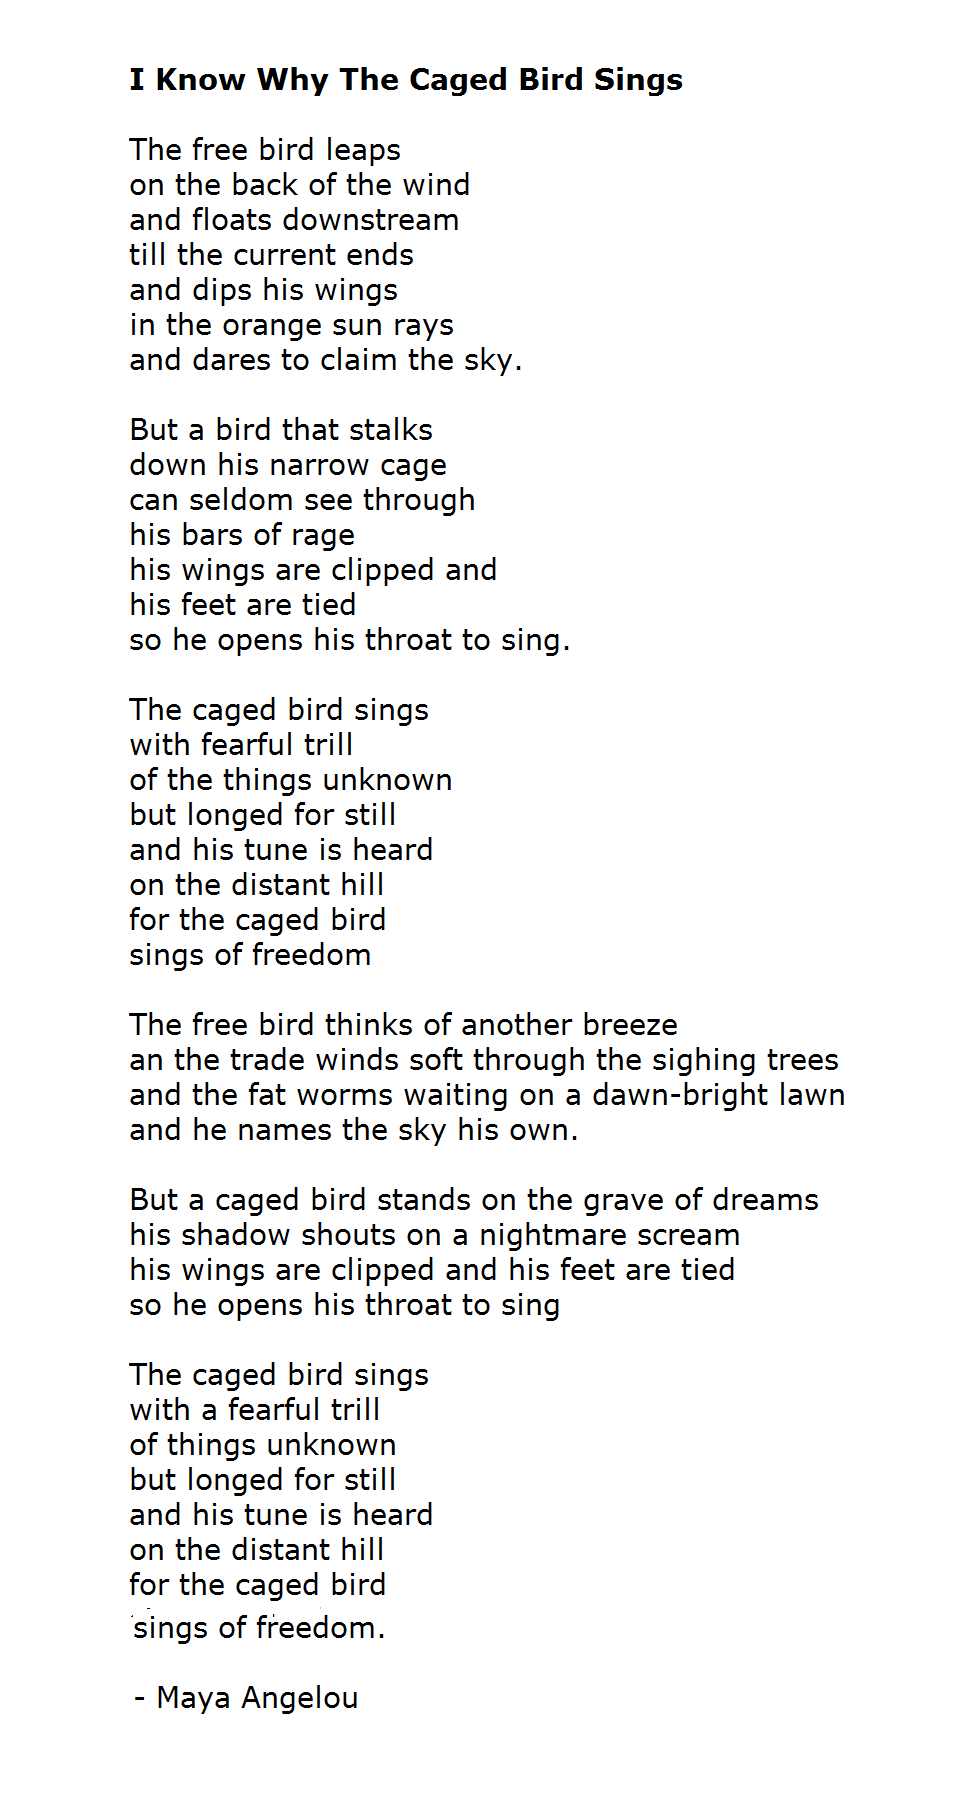 an analysis of major themes in why the caged bird sings by maya angelou Analysis of form and technique print caged bird by maya angelou the caged bird sings with fearful trill of the things unknown but longed for still and his tune is heard on the distant but a caged bird stands on the grave of dreams his shadow shouts on a nightmare scream his wings are clipped.